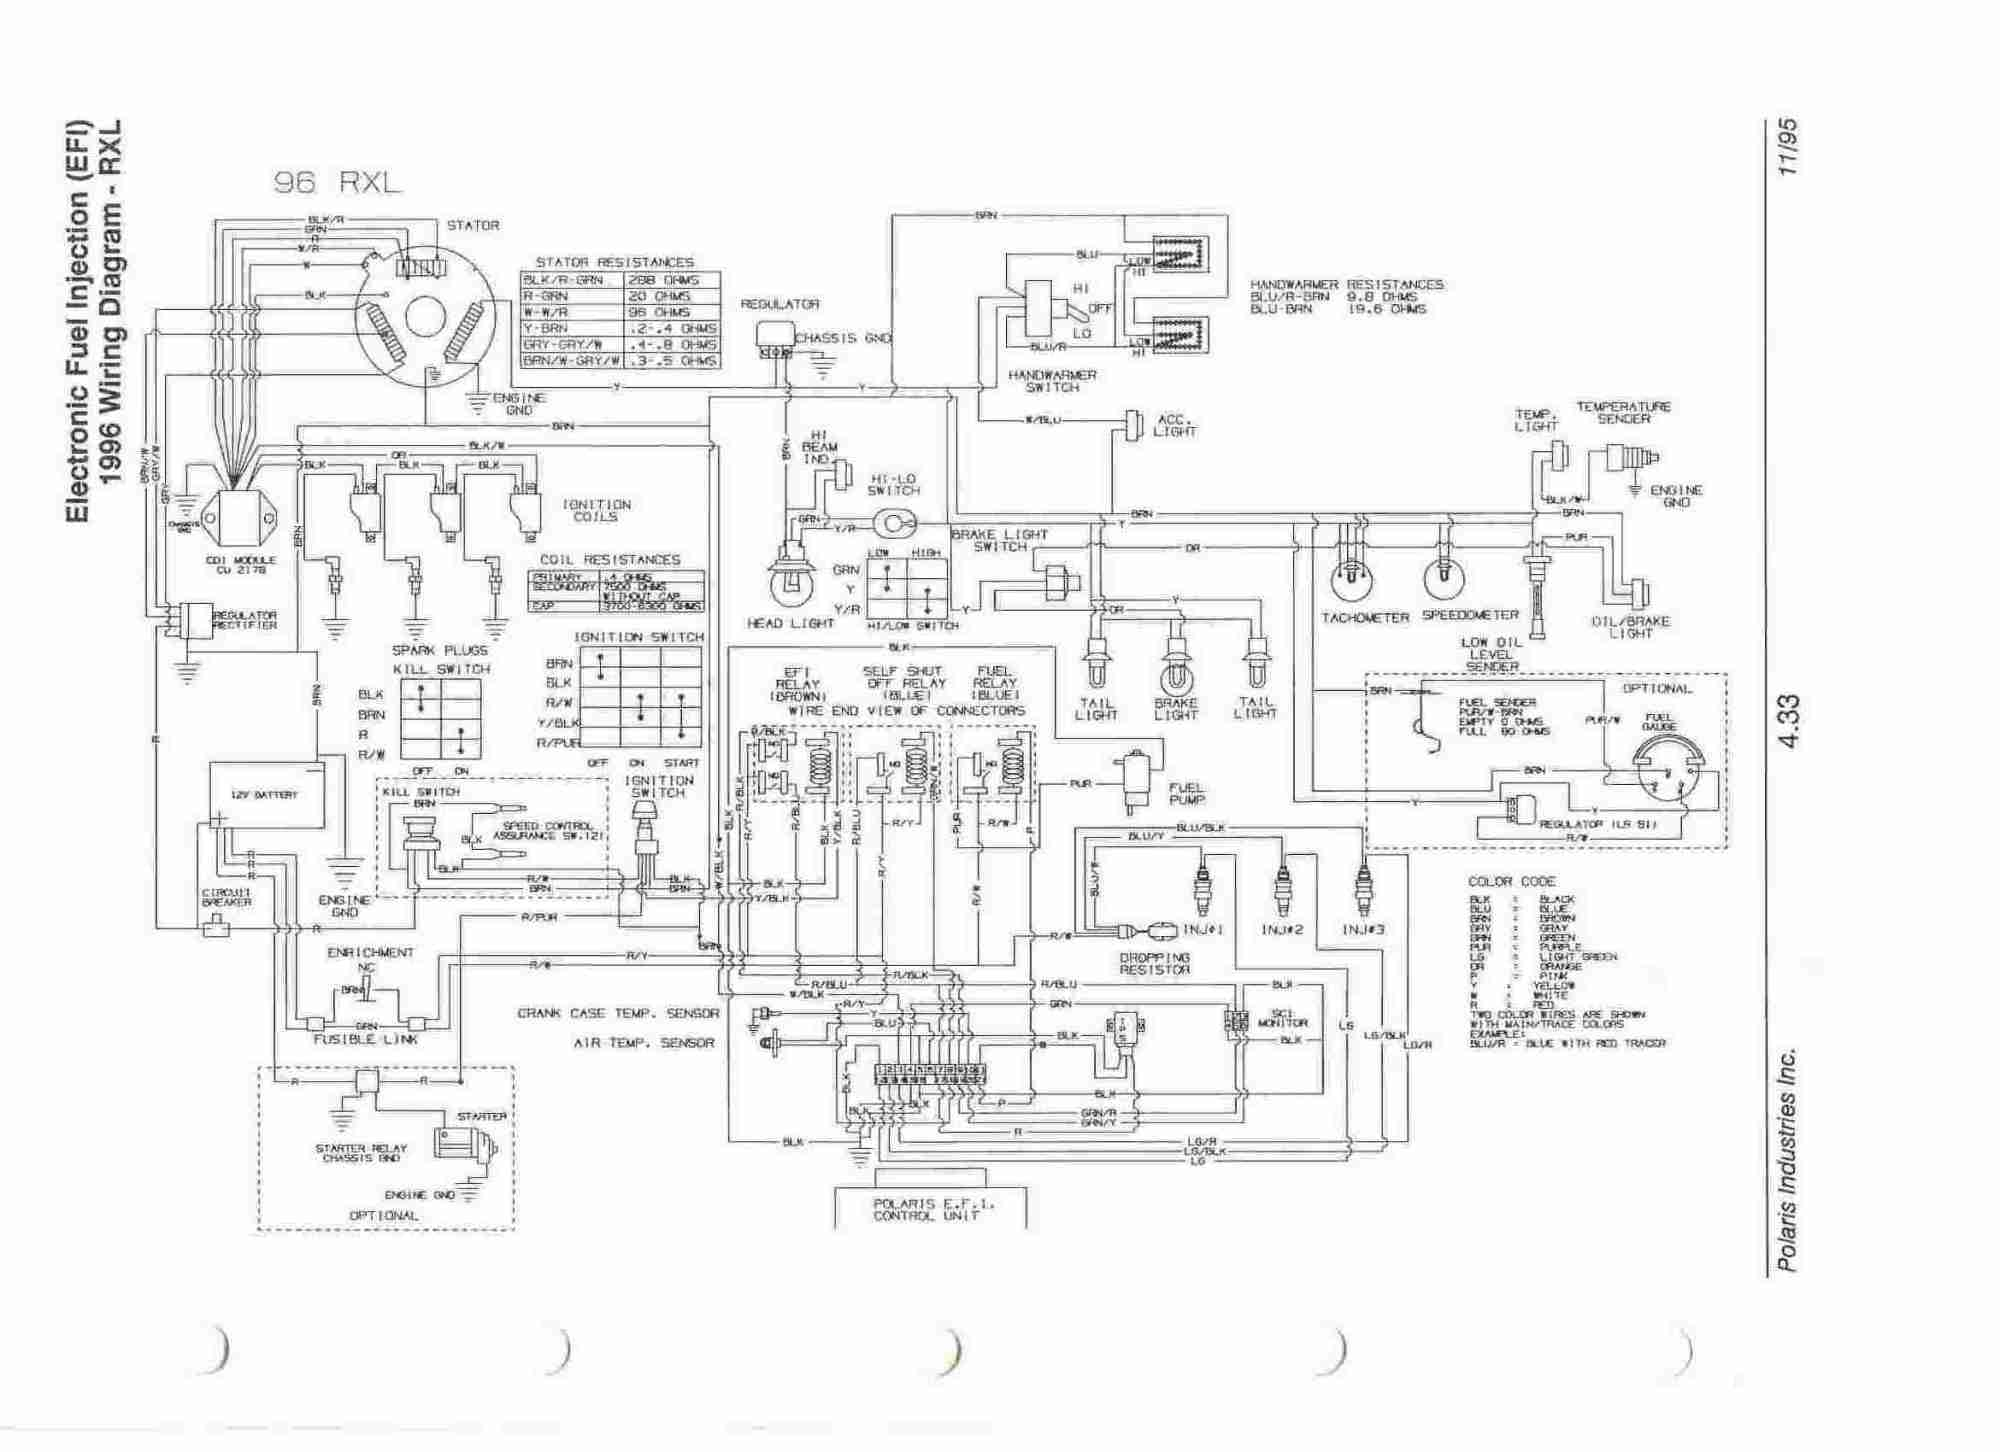 hight resolution of 98 polaris xc 600 wiring diagram wiring diagram third level rh 14 11 12 jacobwinterstein com 2006 polaris 600 voltage regulator 2008 polaris sportsman 500